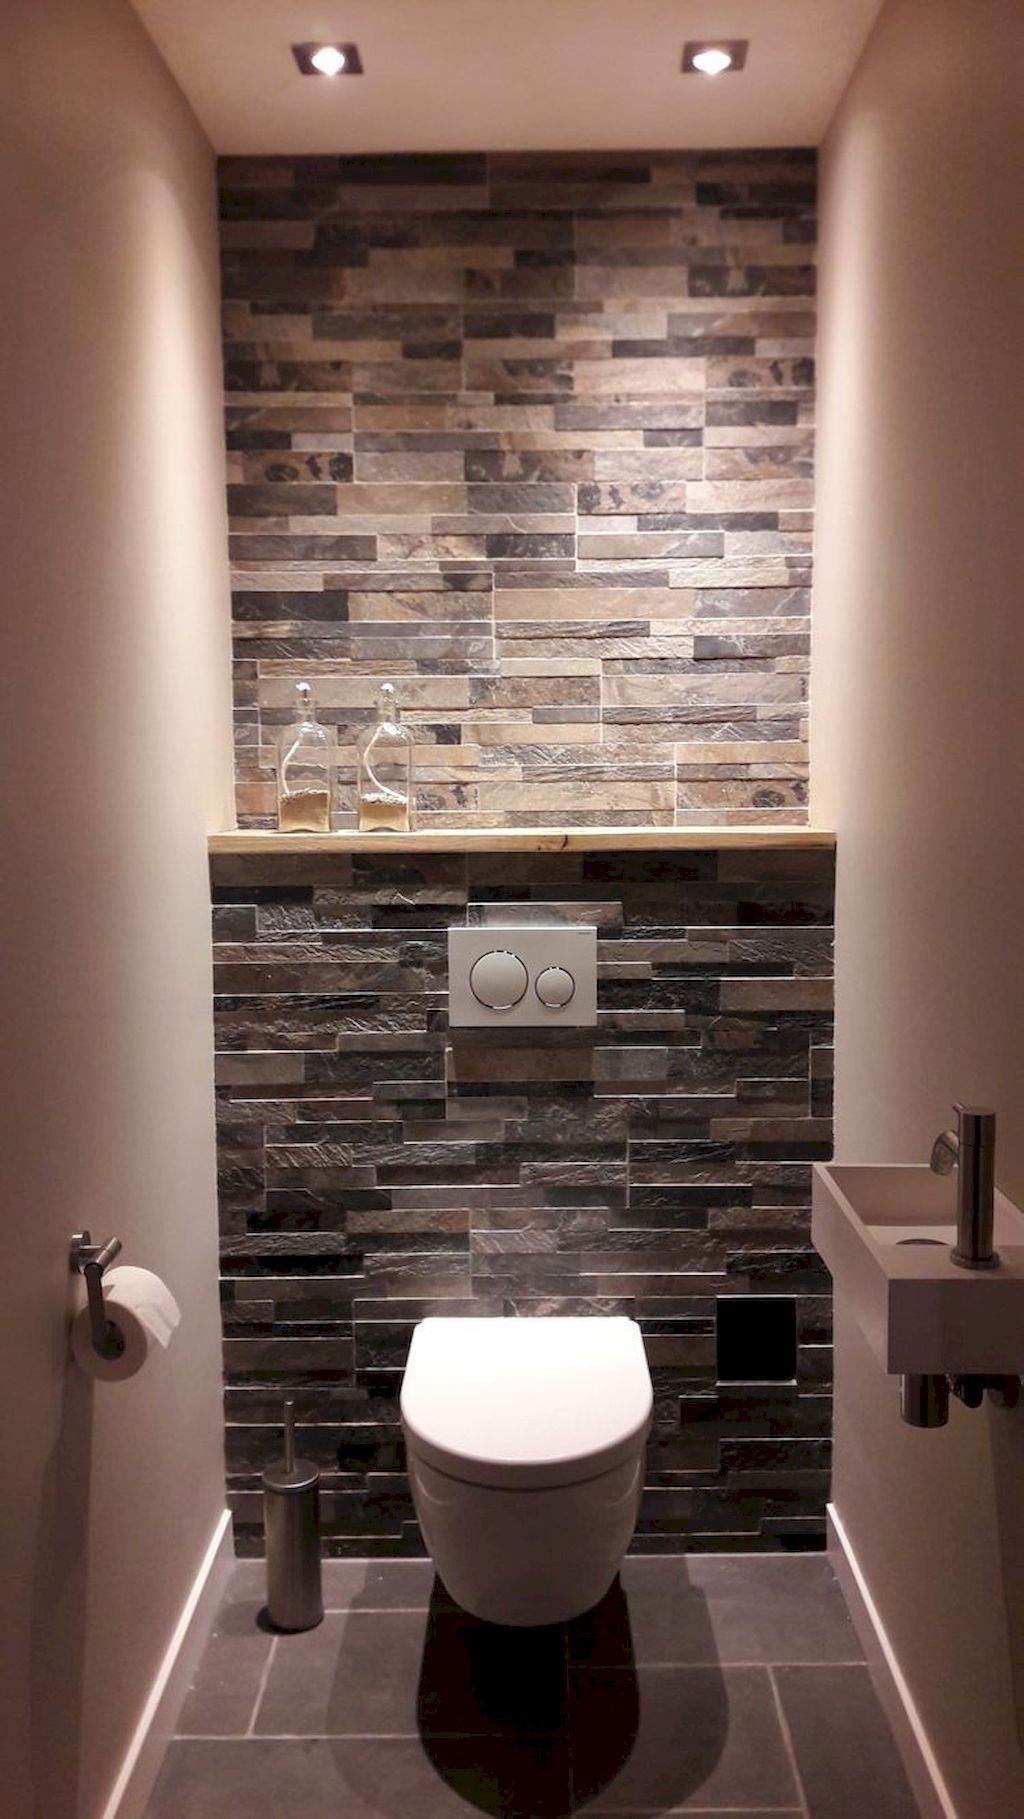 Gorgeous space saving toilet design what you can do in  small bathroom https also most popular designs on budget my life rh pinterest